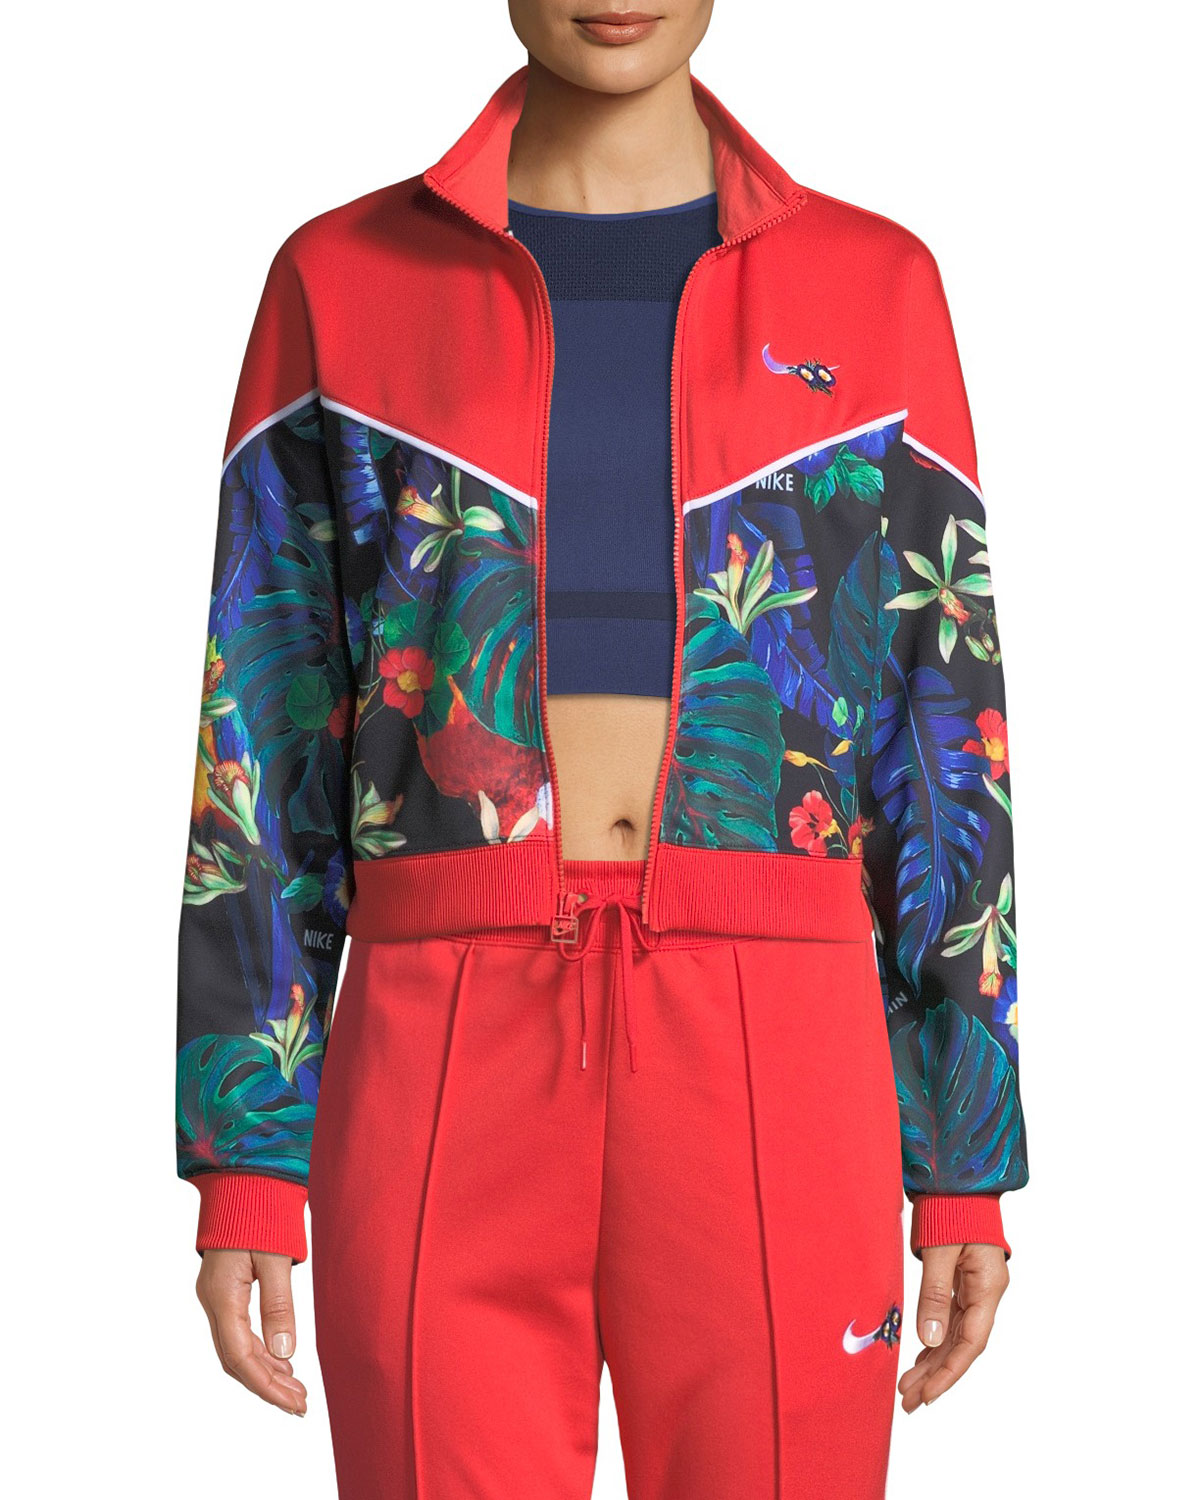 new arrival 62171 147f2 NikeNSW FZ Hyper Femme Track Jacket